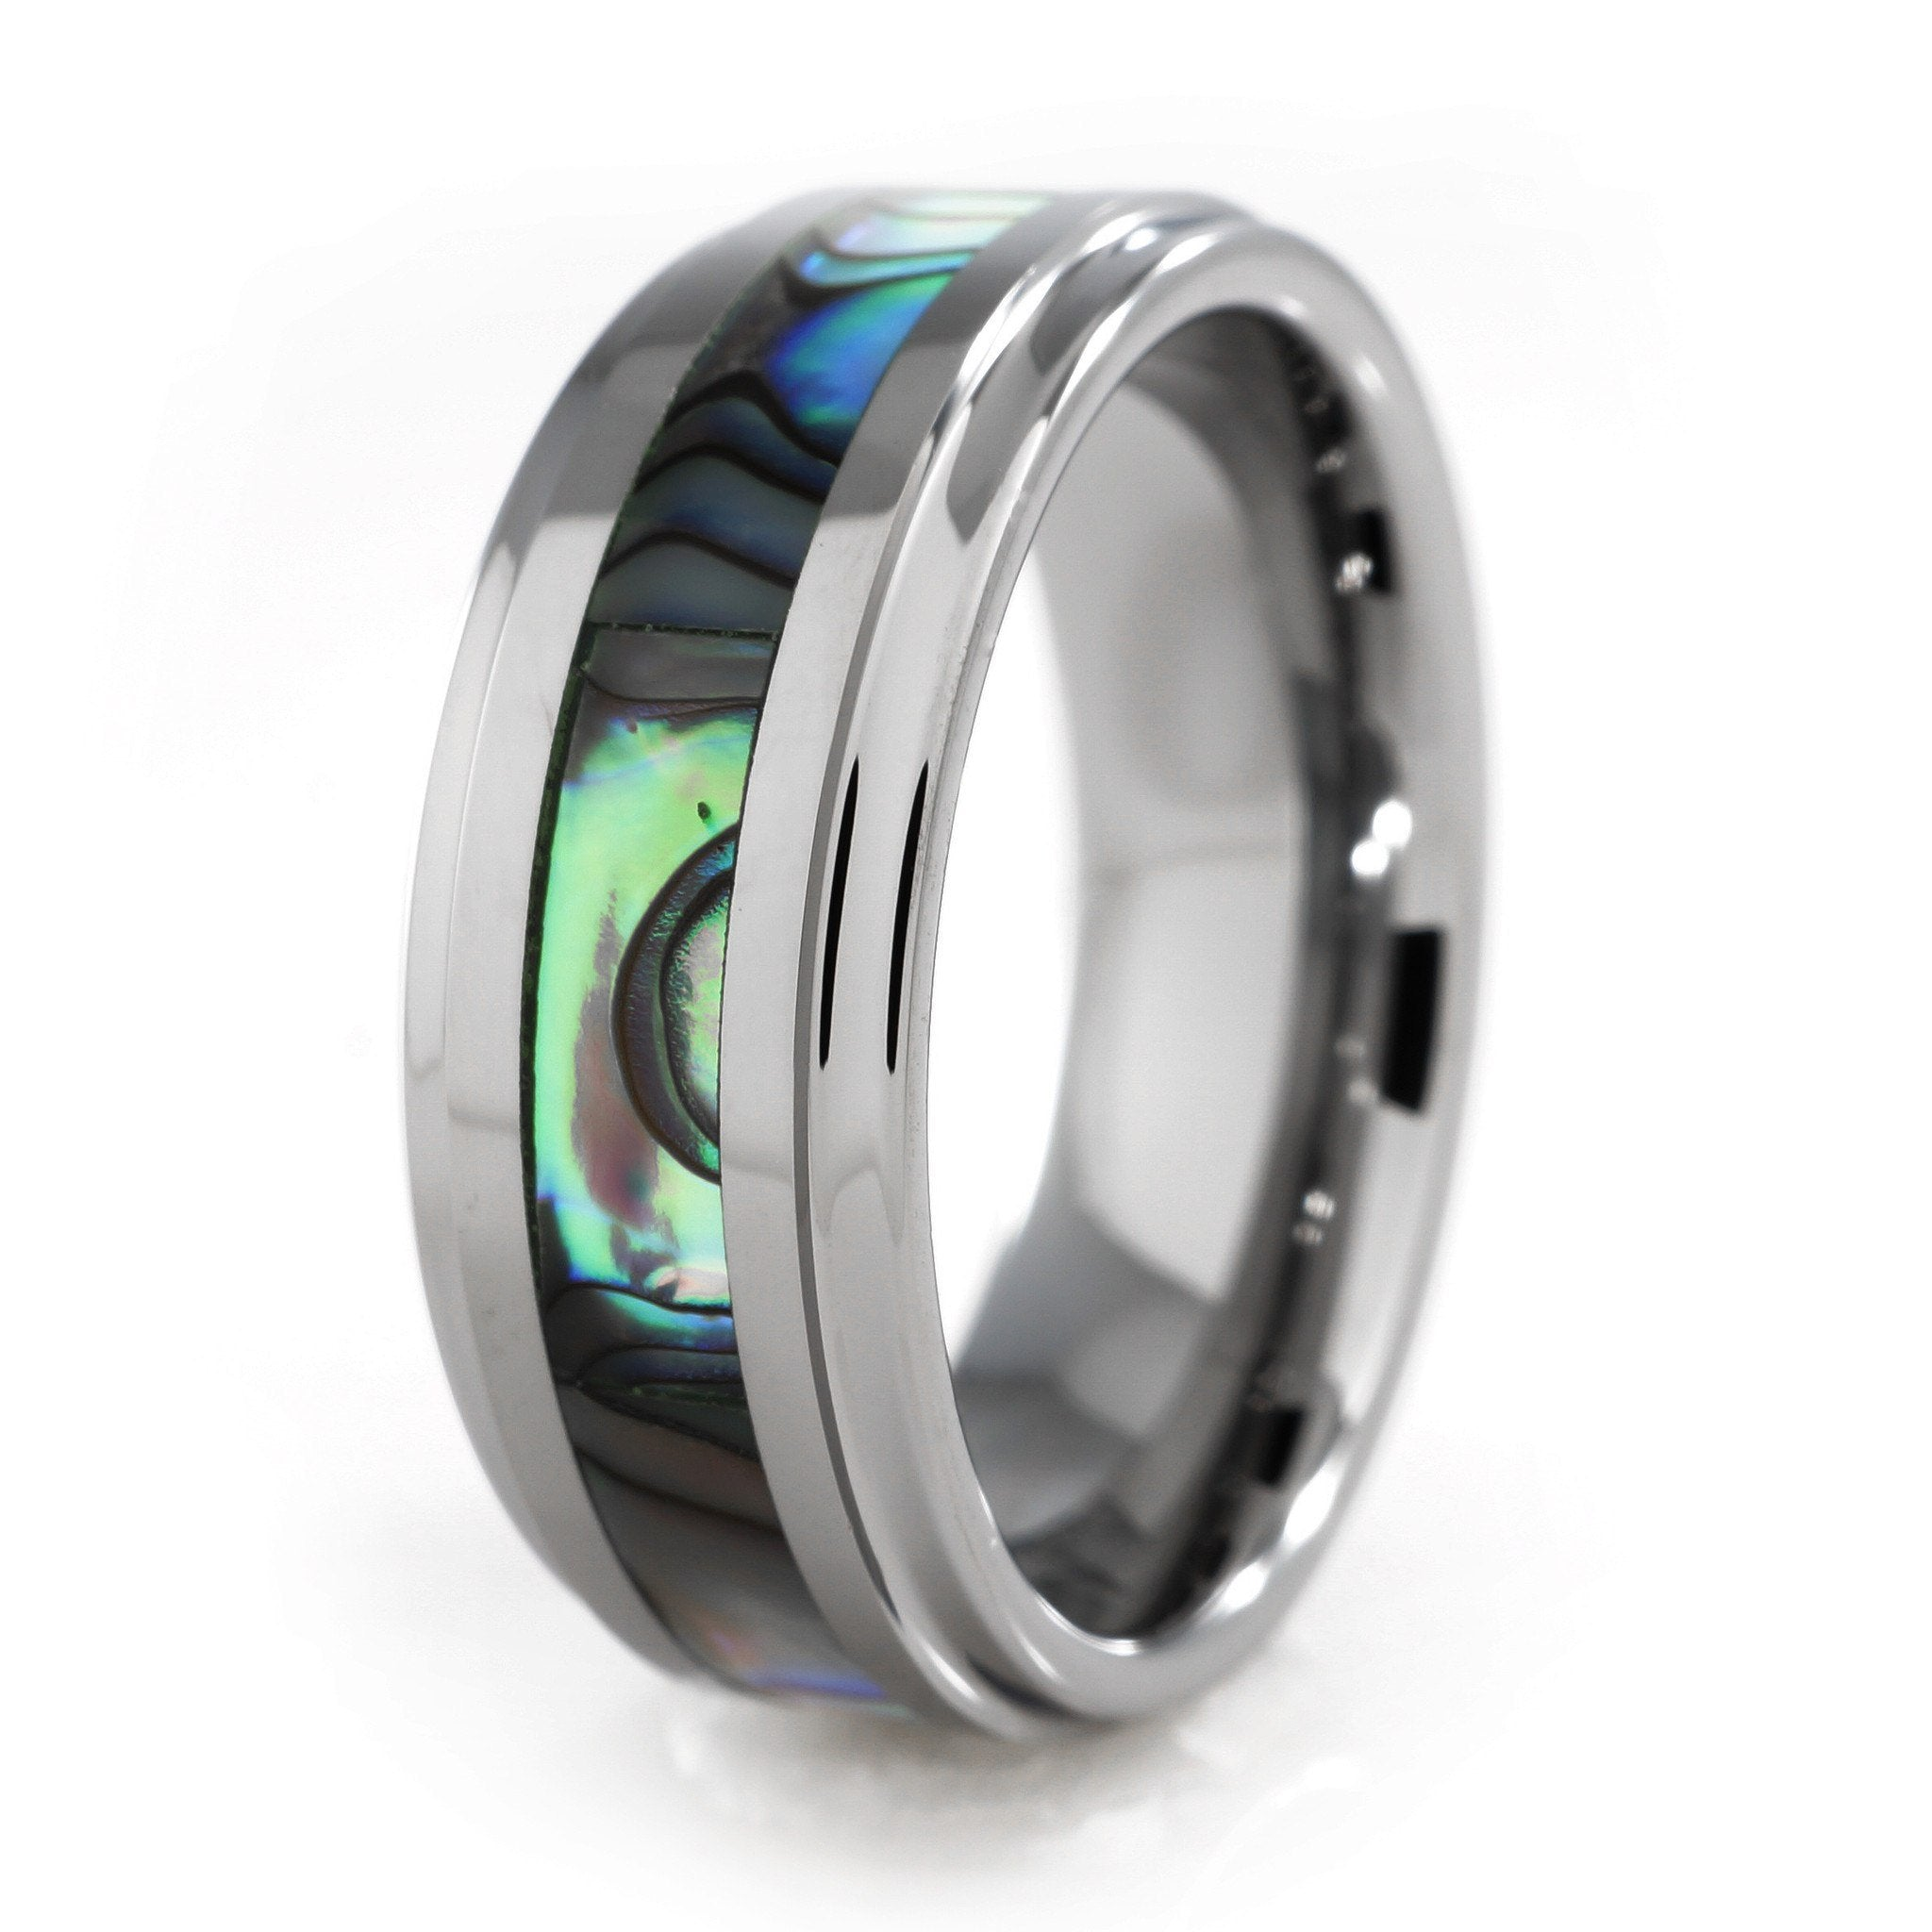 Affordable Abalone Shell Silver Tungsten Carbide Ring 8MM - White Background